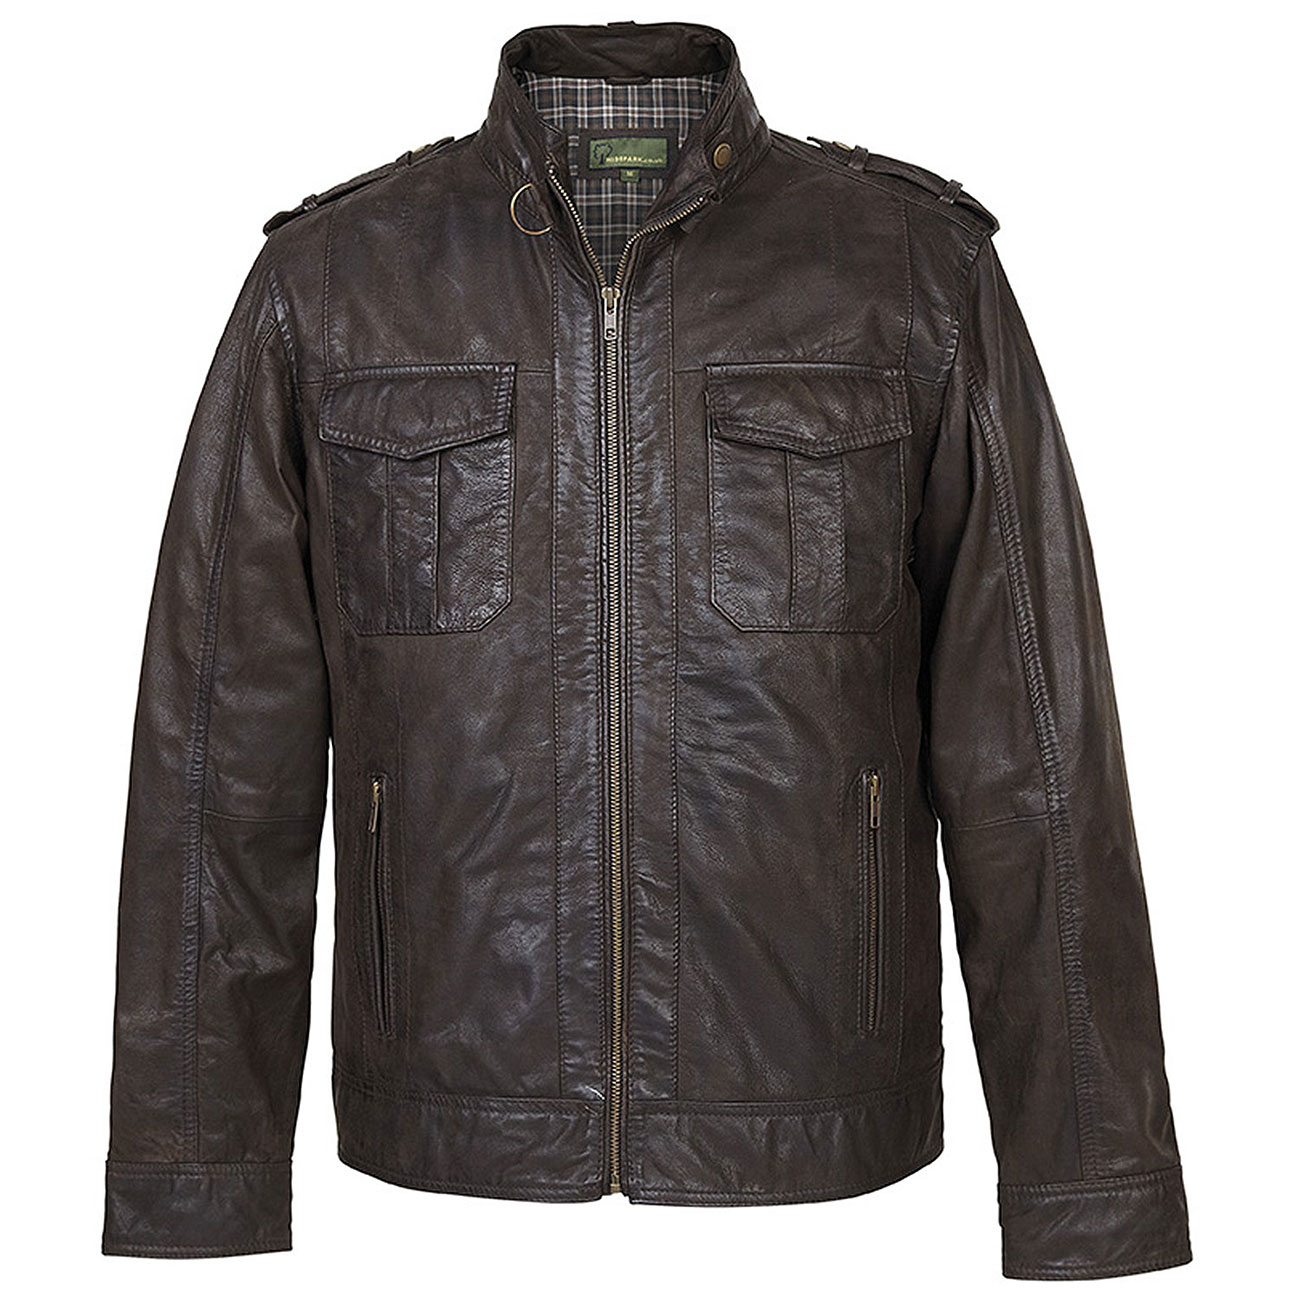 Gents Jack Brown Leather Jacket